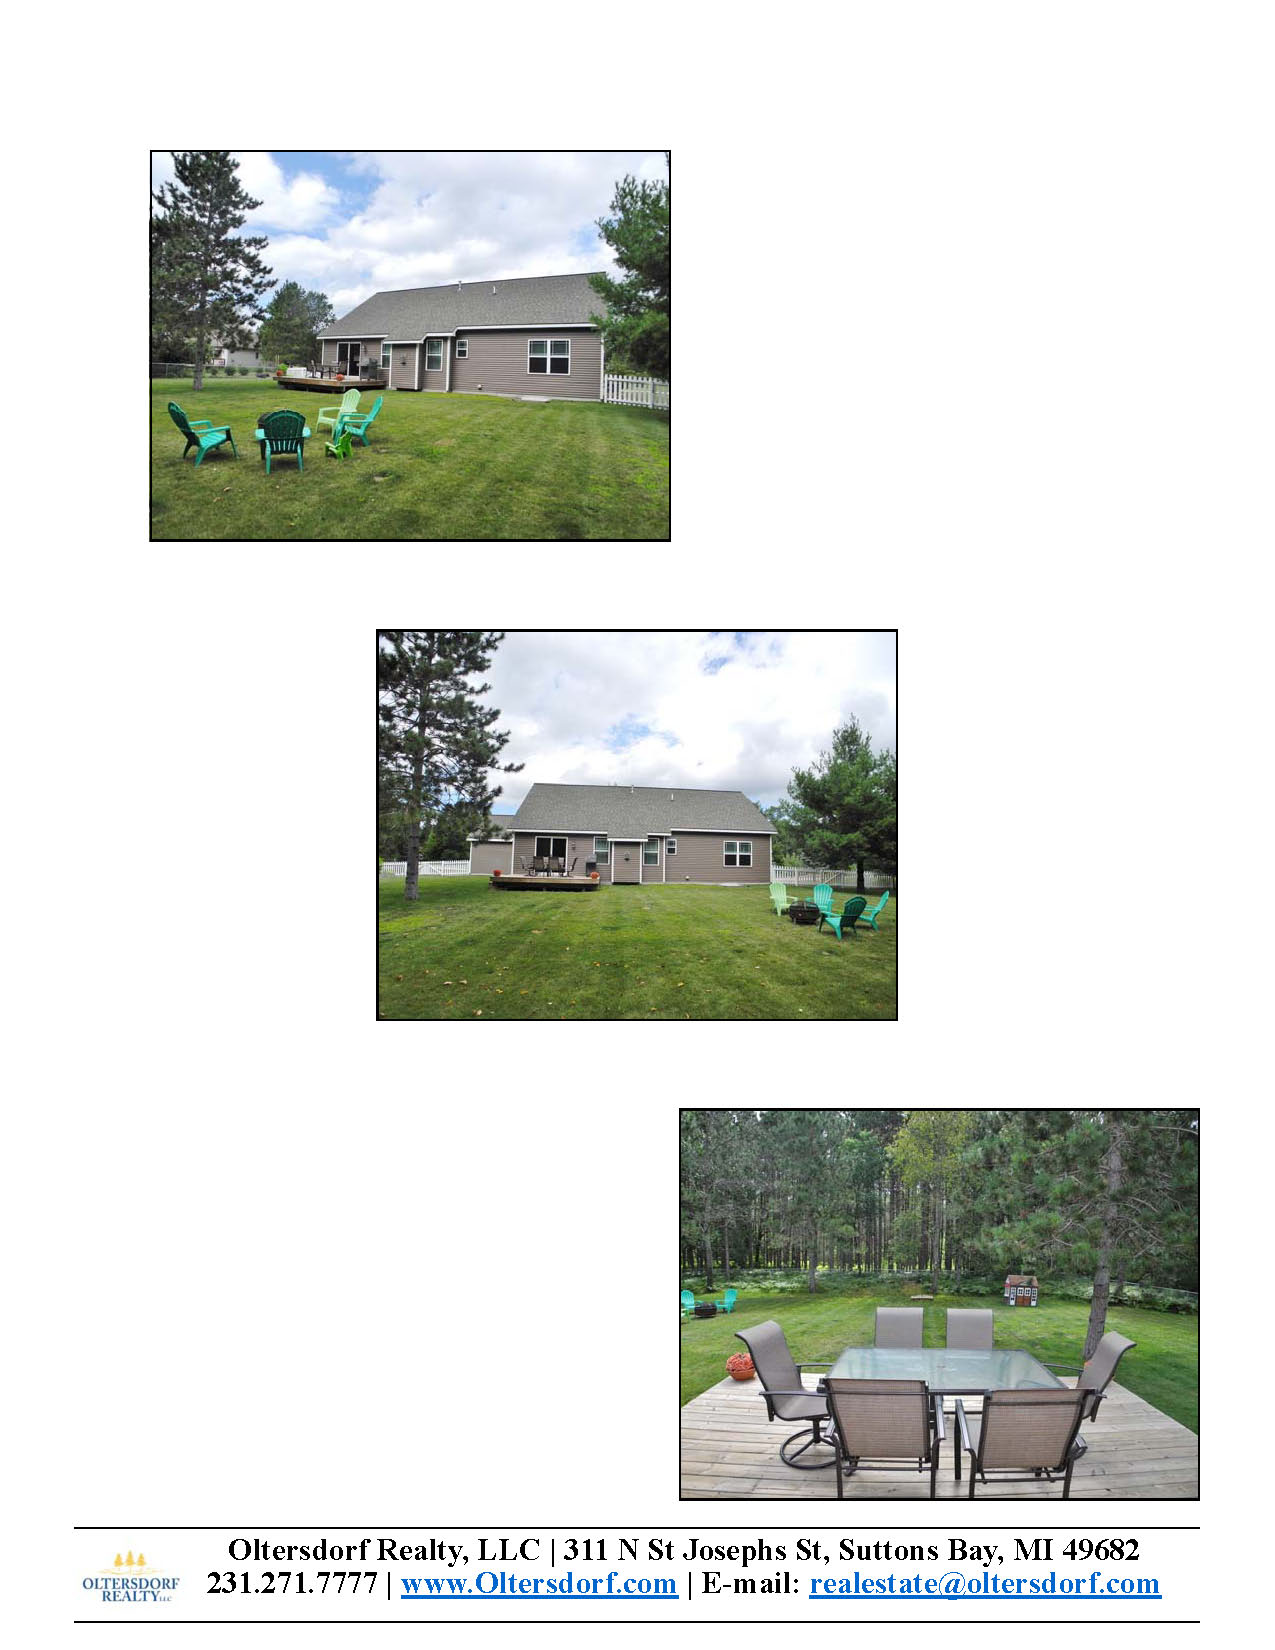 10049 Fishers Run, Traverse City, MI – Newer 2,175 Sq Ft Home on 1.32 Acres - Marketing Packet (4).jpg